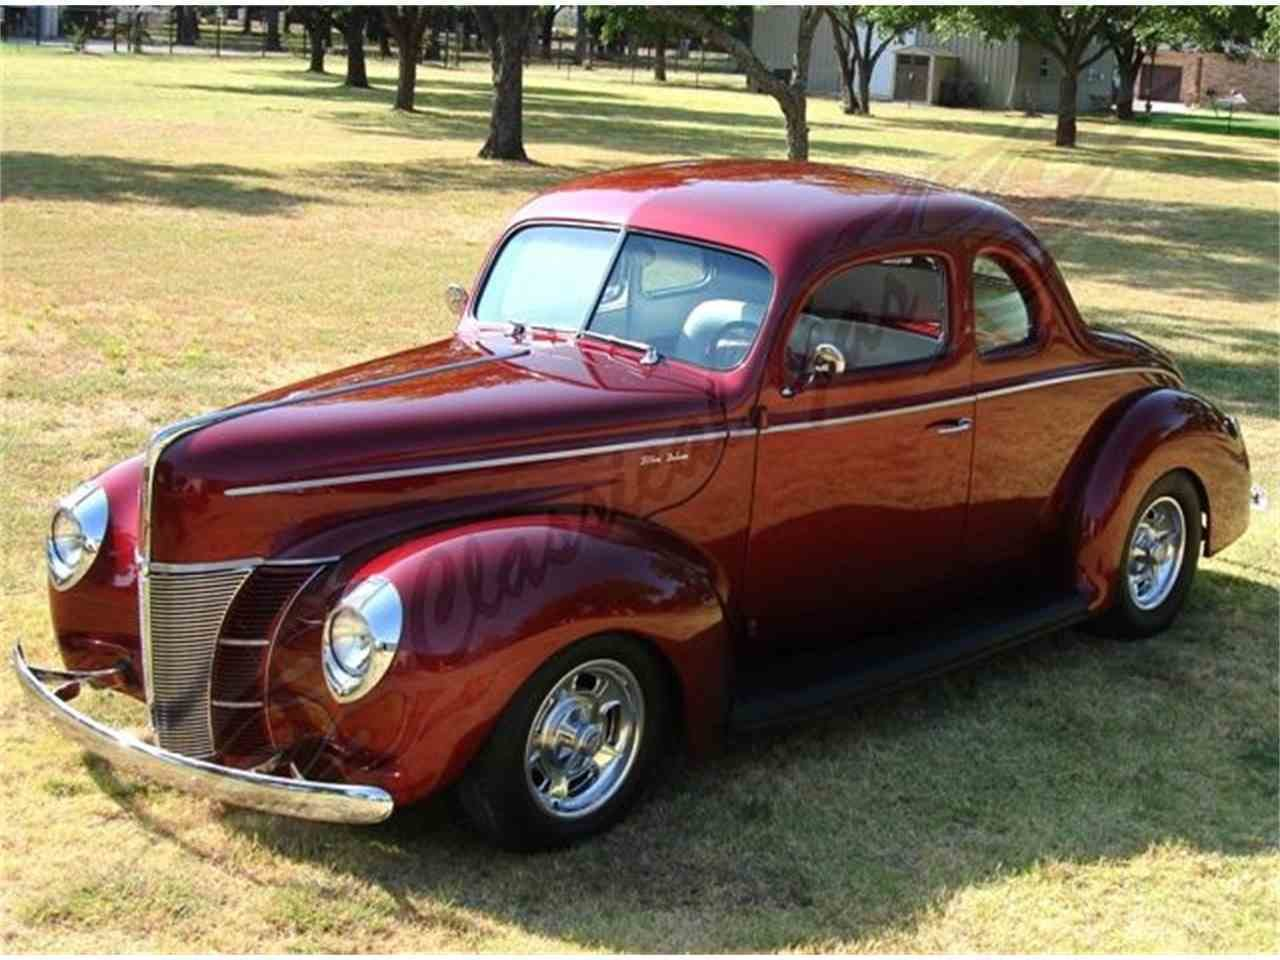 New 1940 Ford Coupe For Sale Classiccars Com Cc 983309 On This Month Original 1024 x 768